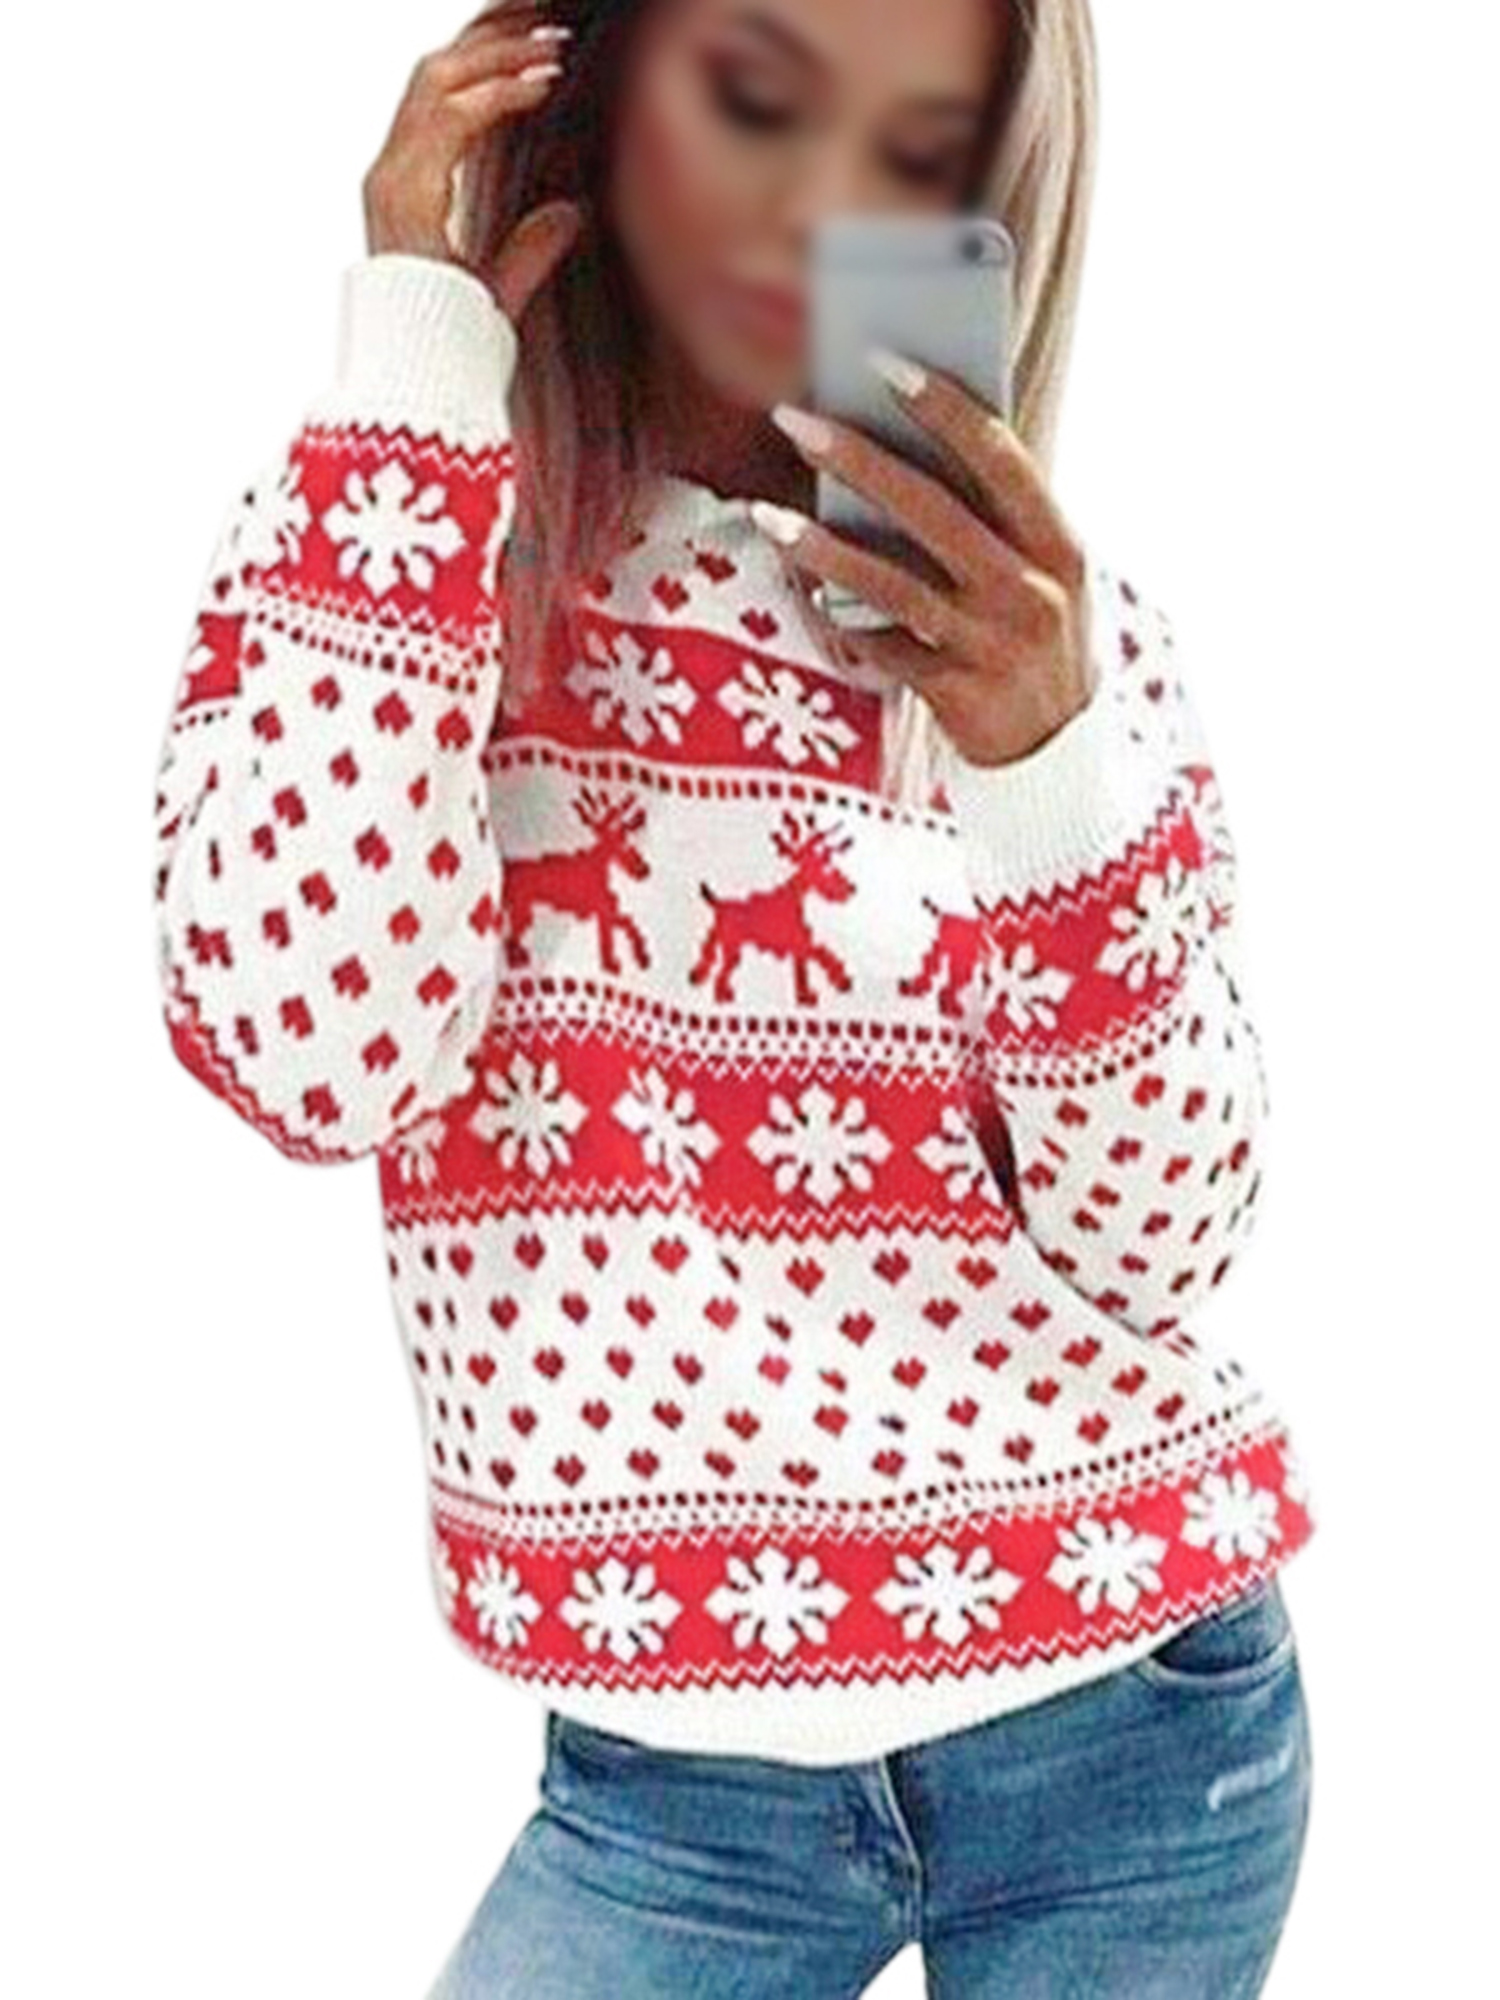 Blouses for Women,Womens Tops Casual Long Sleeve Elk Deer Sweatshirt Hooded Pullover Tops Blouse